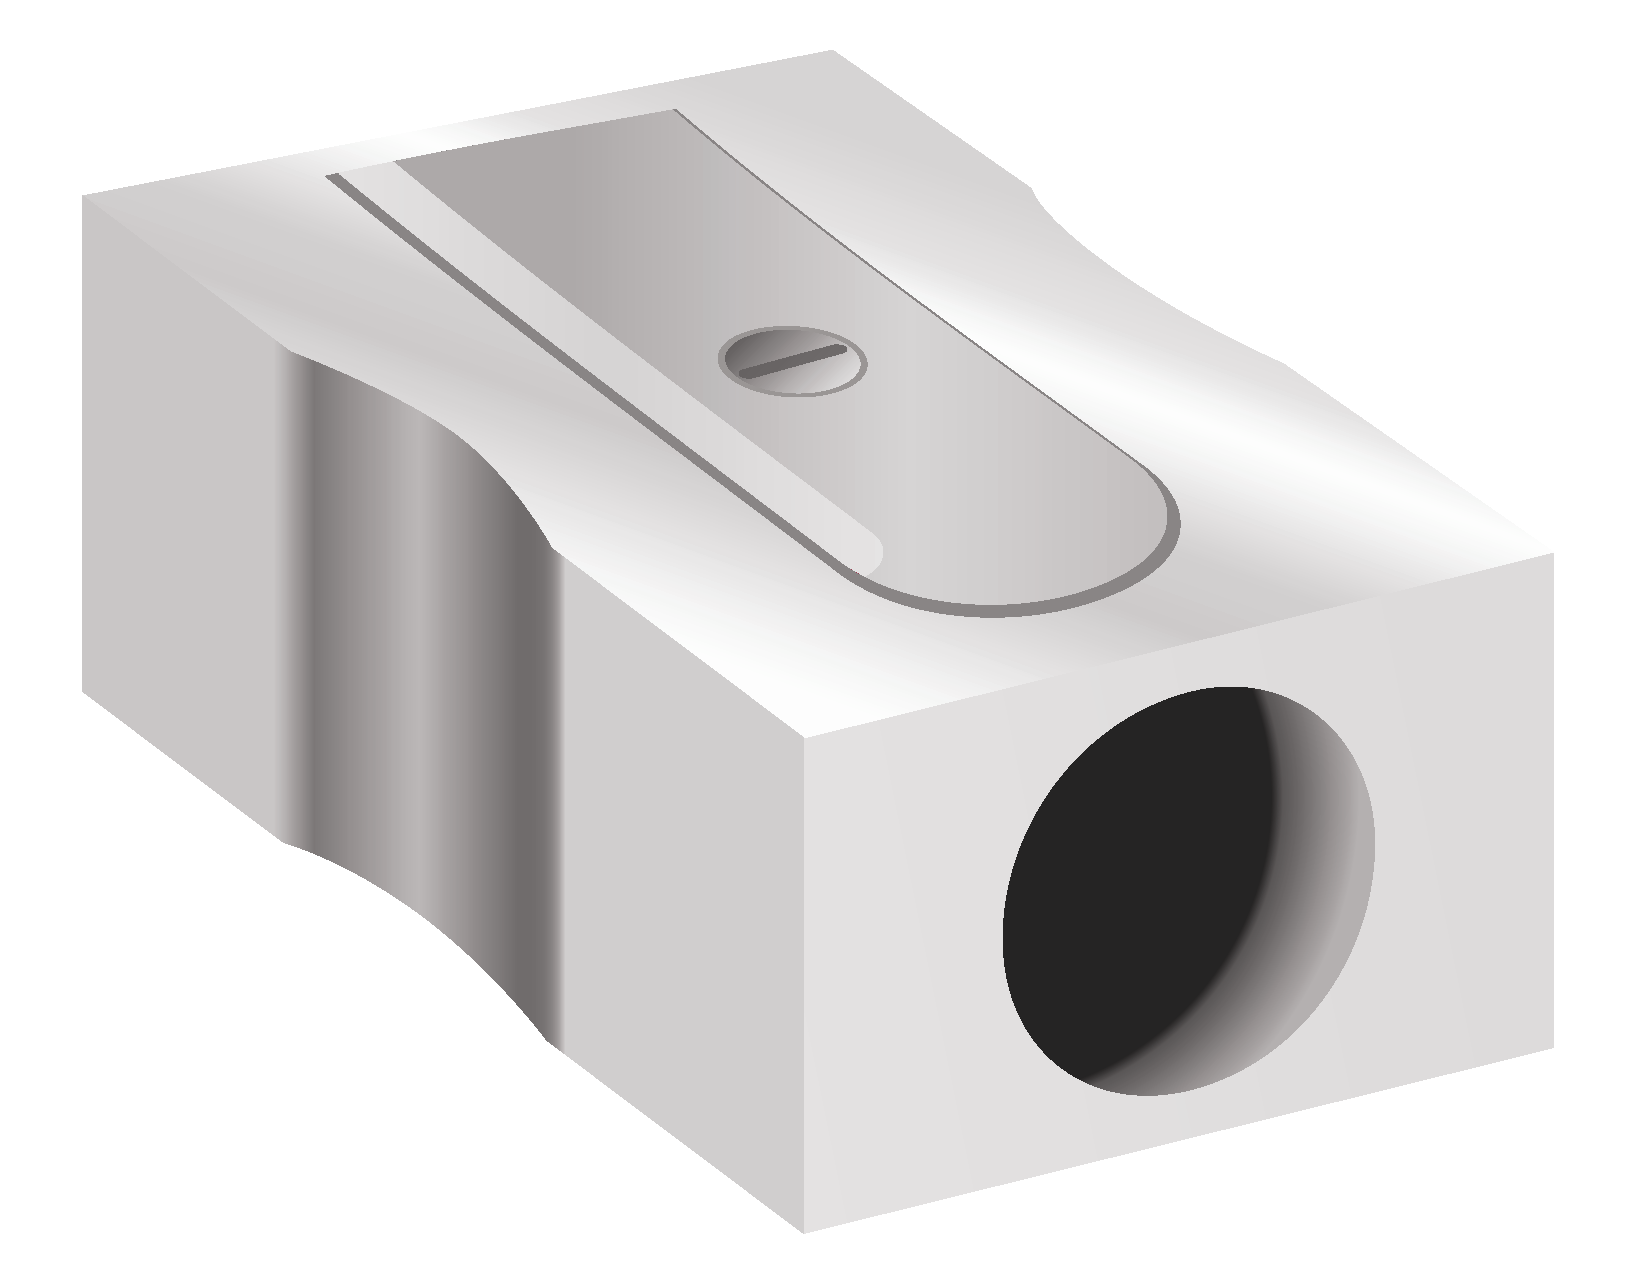 Pencil sharpener png. Clipart picture gallery yopriceville